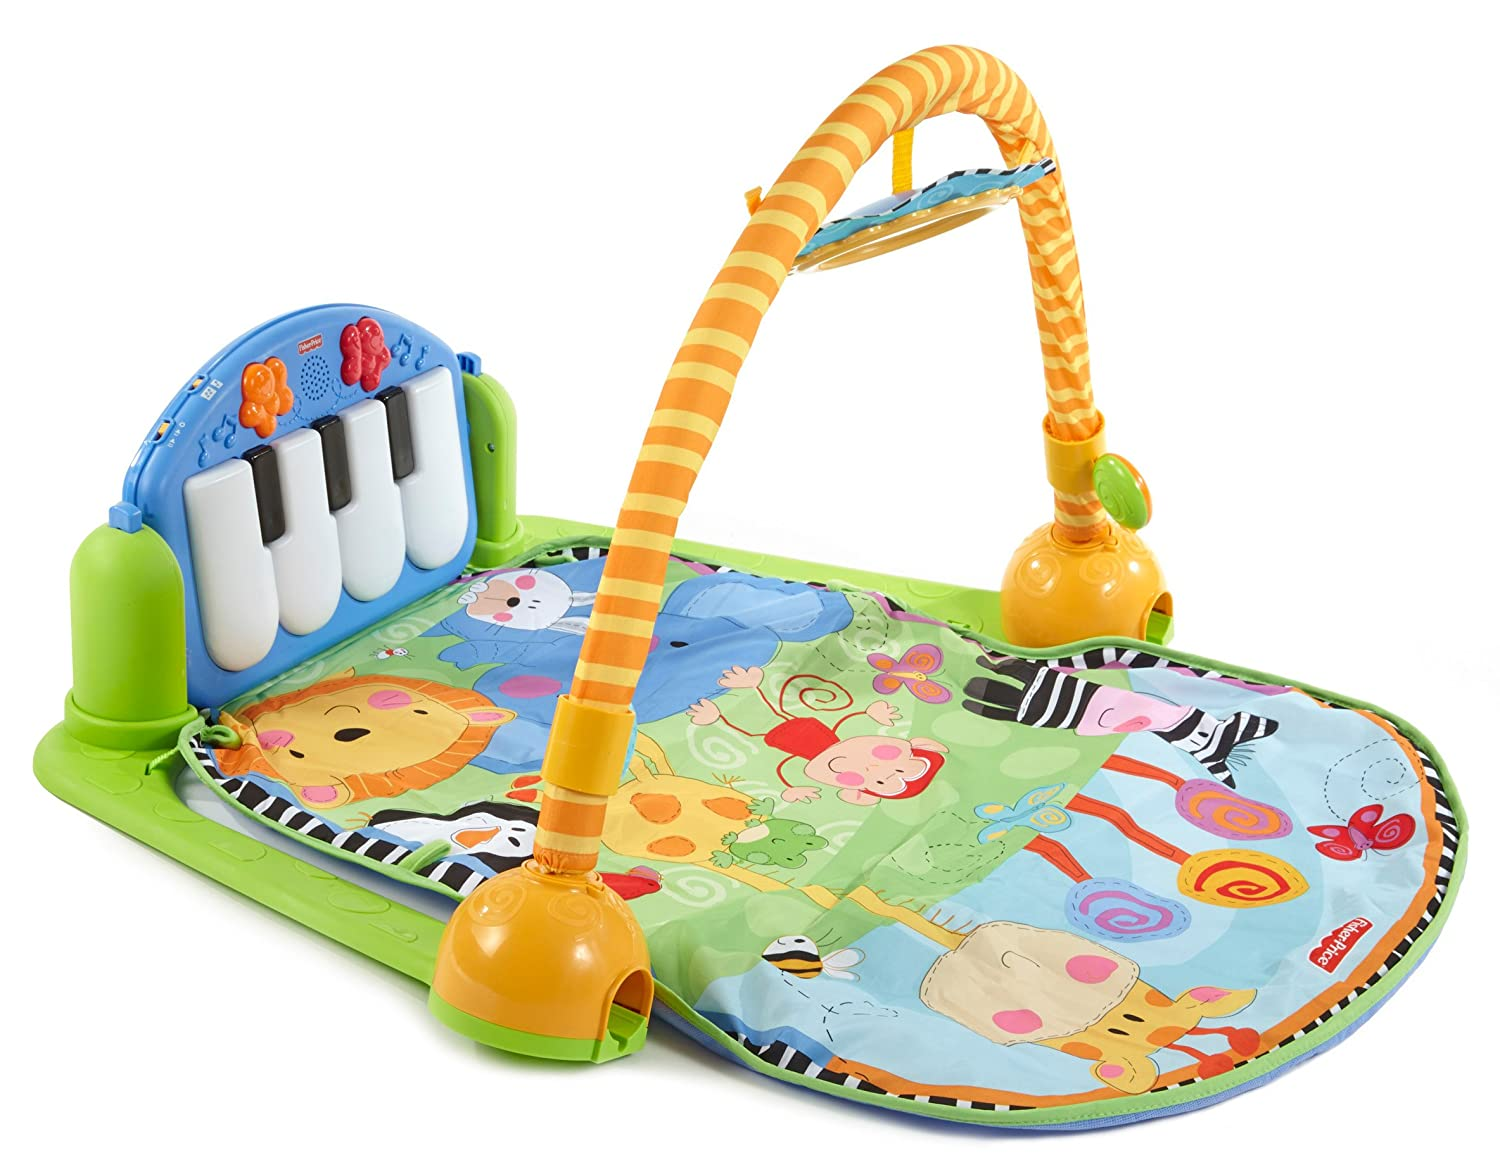 Fisher-Price Discover n Grow Kick and Play Piano Gym Discontinued by Manufacturer